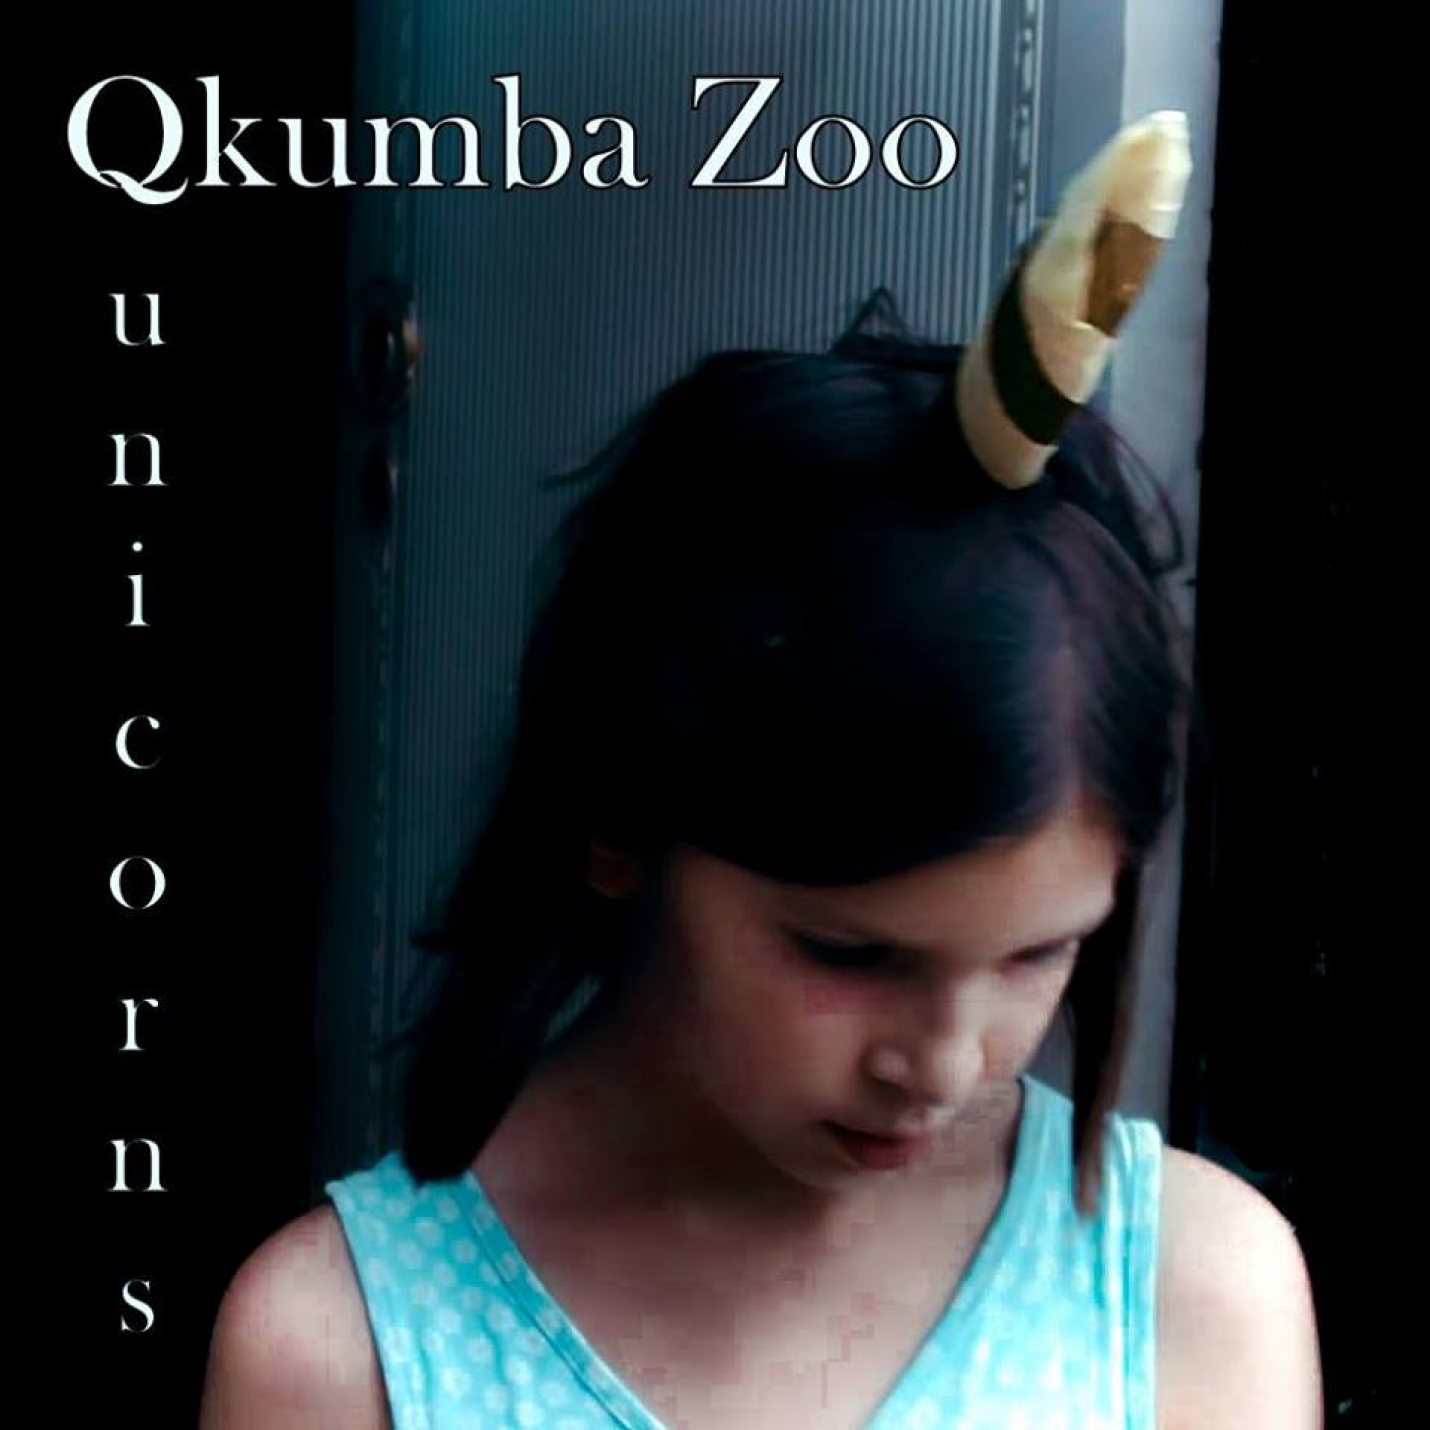 Qkumba Zoo' Release New Single 'Unicorns'